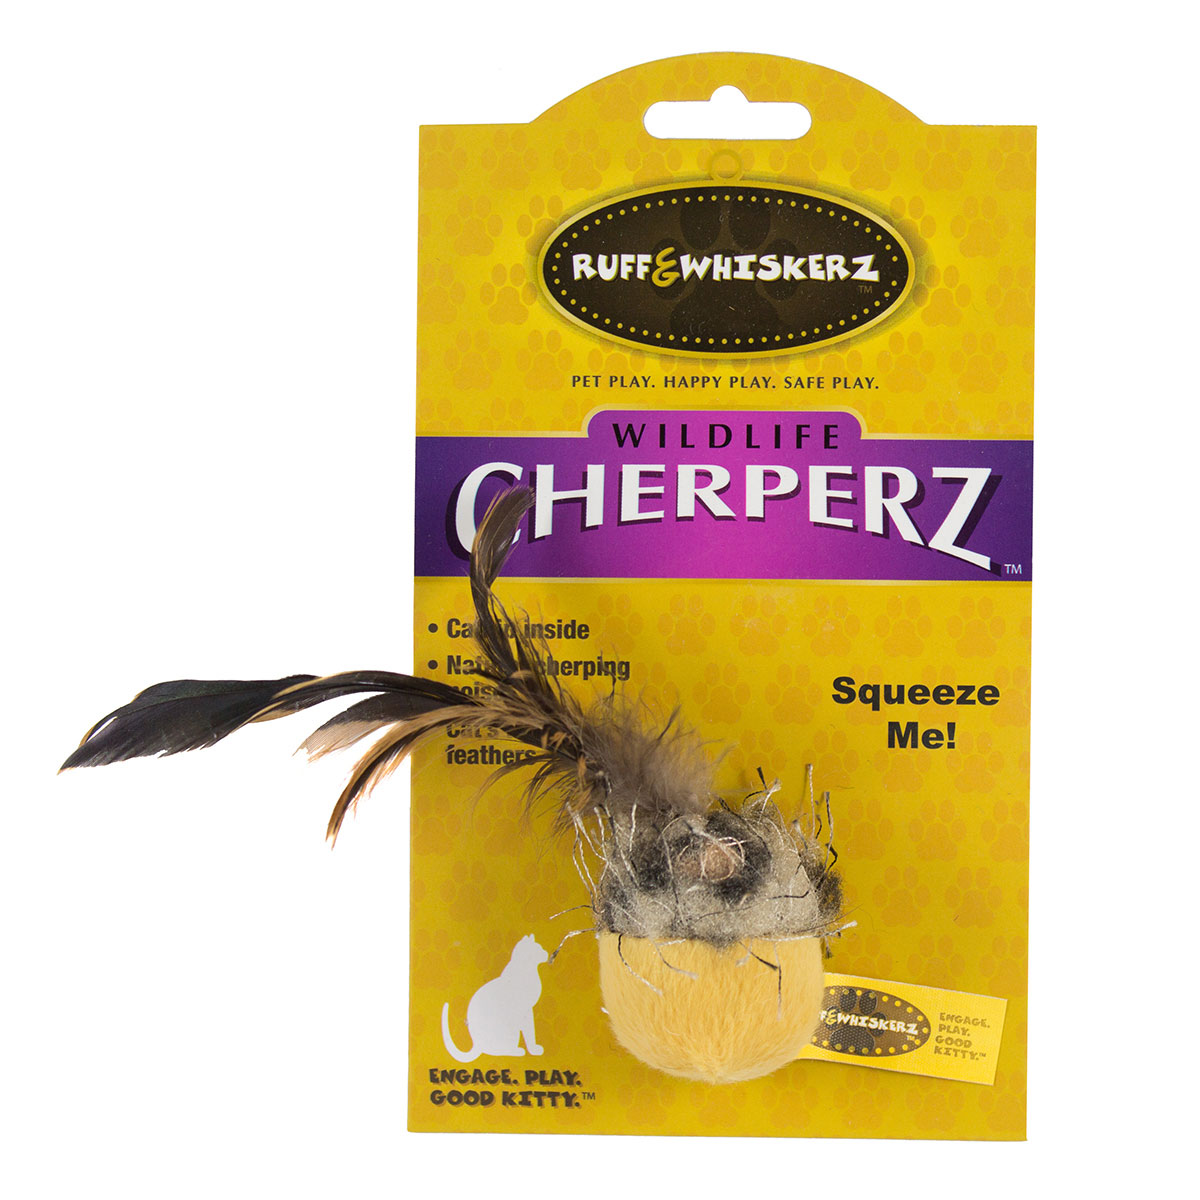 Wildlife Cherperz